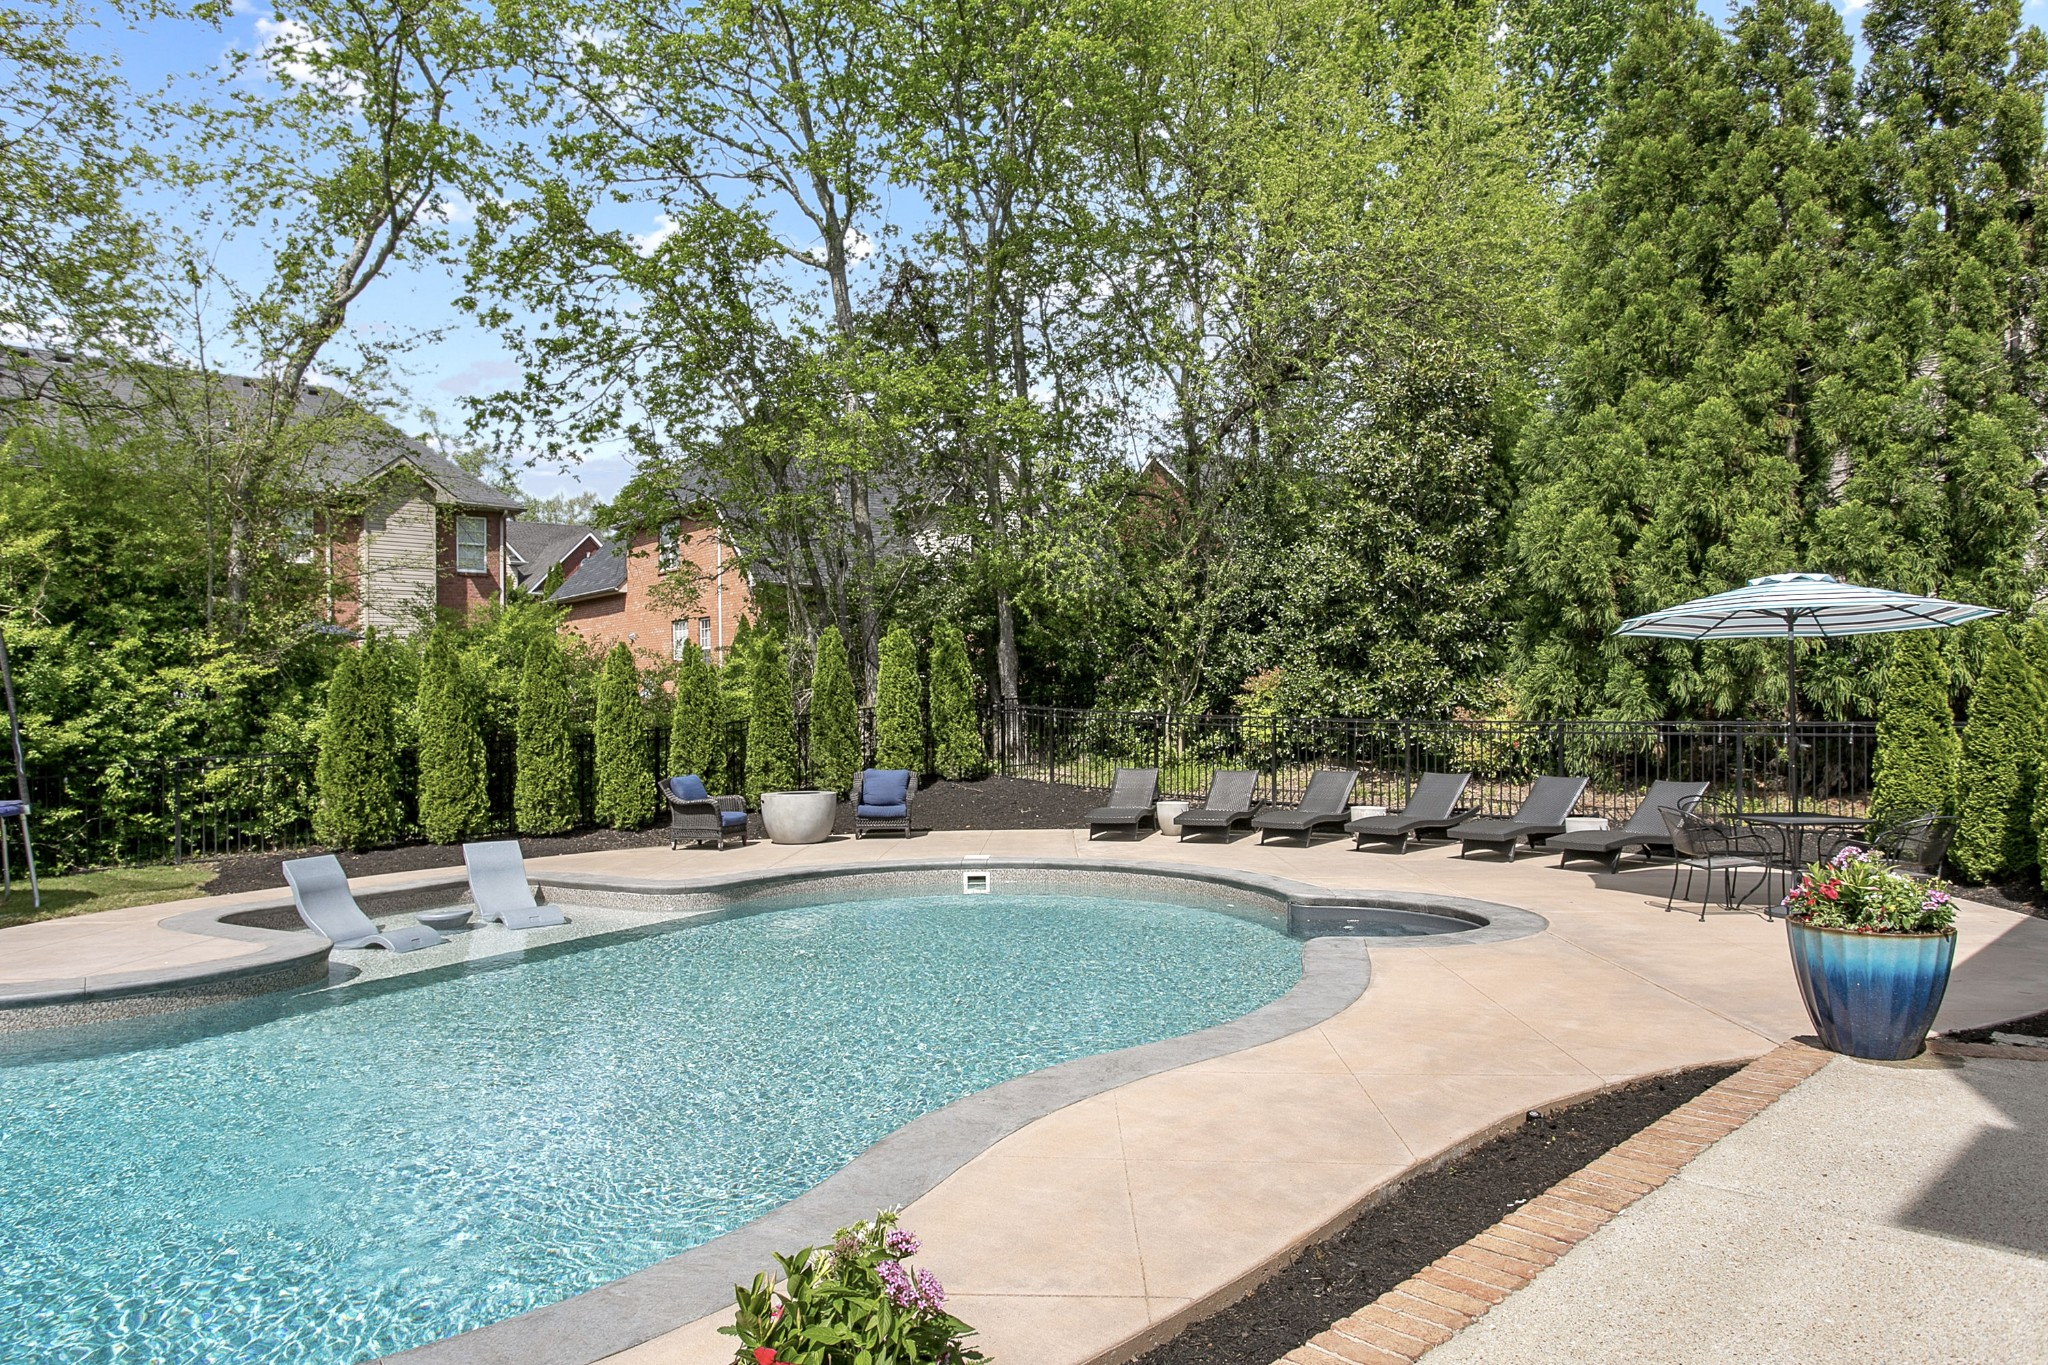 TAKE MY BREATH AWAY! Custom Built 5 BR BEAUTY on Cul-De-Sac | Fenced Yard with Private In-Ground Pool (2018) | You will LOVE Creating New Memories in THIS Backyard Oasis This Summer! NEW ROOF May 2021 | Study | Formal Dining | Lrg Laundry | 2 Stry Great Rm Overlooking Spectacular Back Yard | Hobby | Storage | ENTERTAINER'S DELIGHT | Don't Let This One Get Away | FIRST SHOWINGS: Friday 4/30 | OFFER DEADLINE: Sunday 5/2 @5pm | OPEN HOUSE: FRI & SAT 12pm-4pm.THIS IS THE ONE YOU'VE BEEN WAITING FOR!